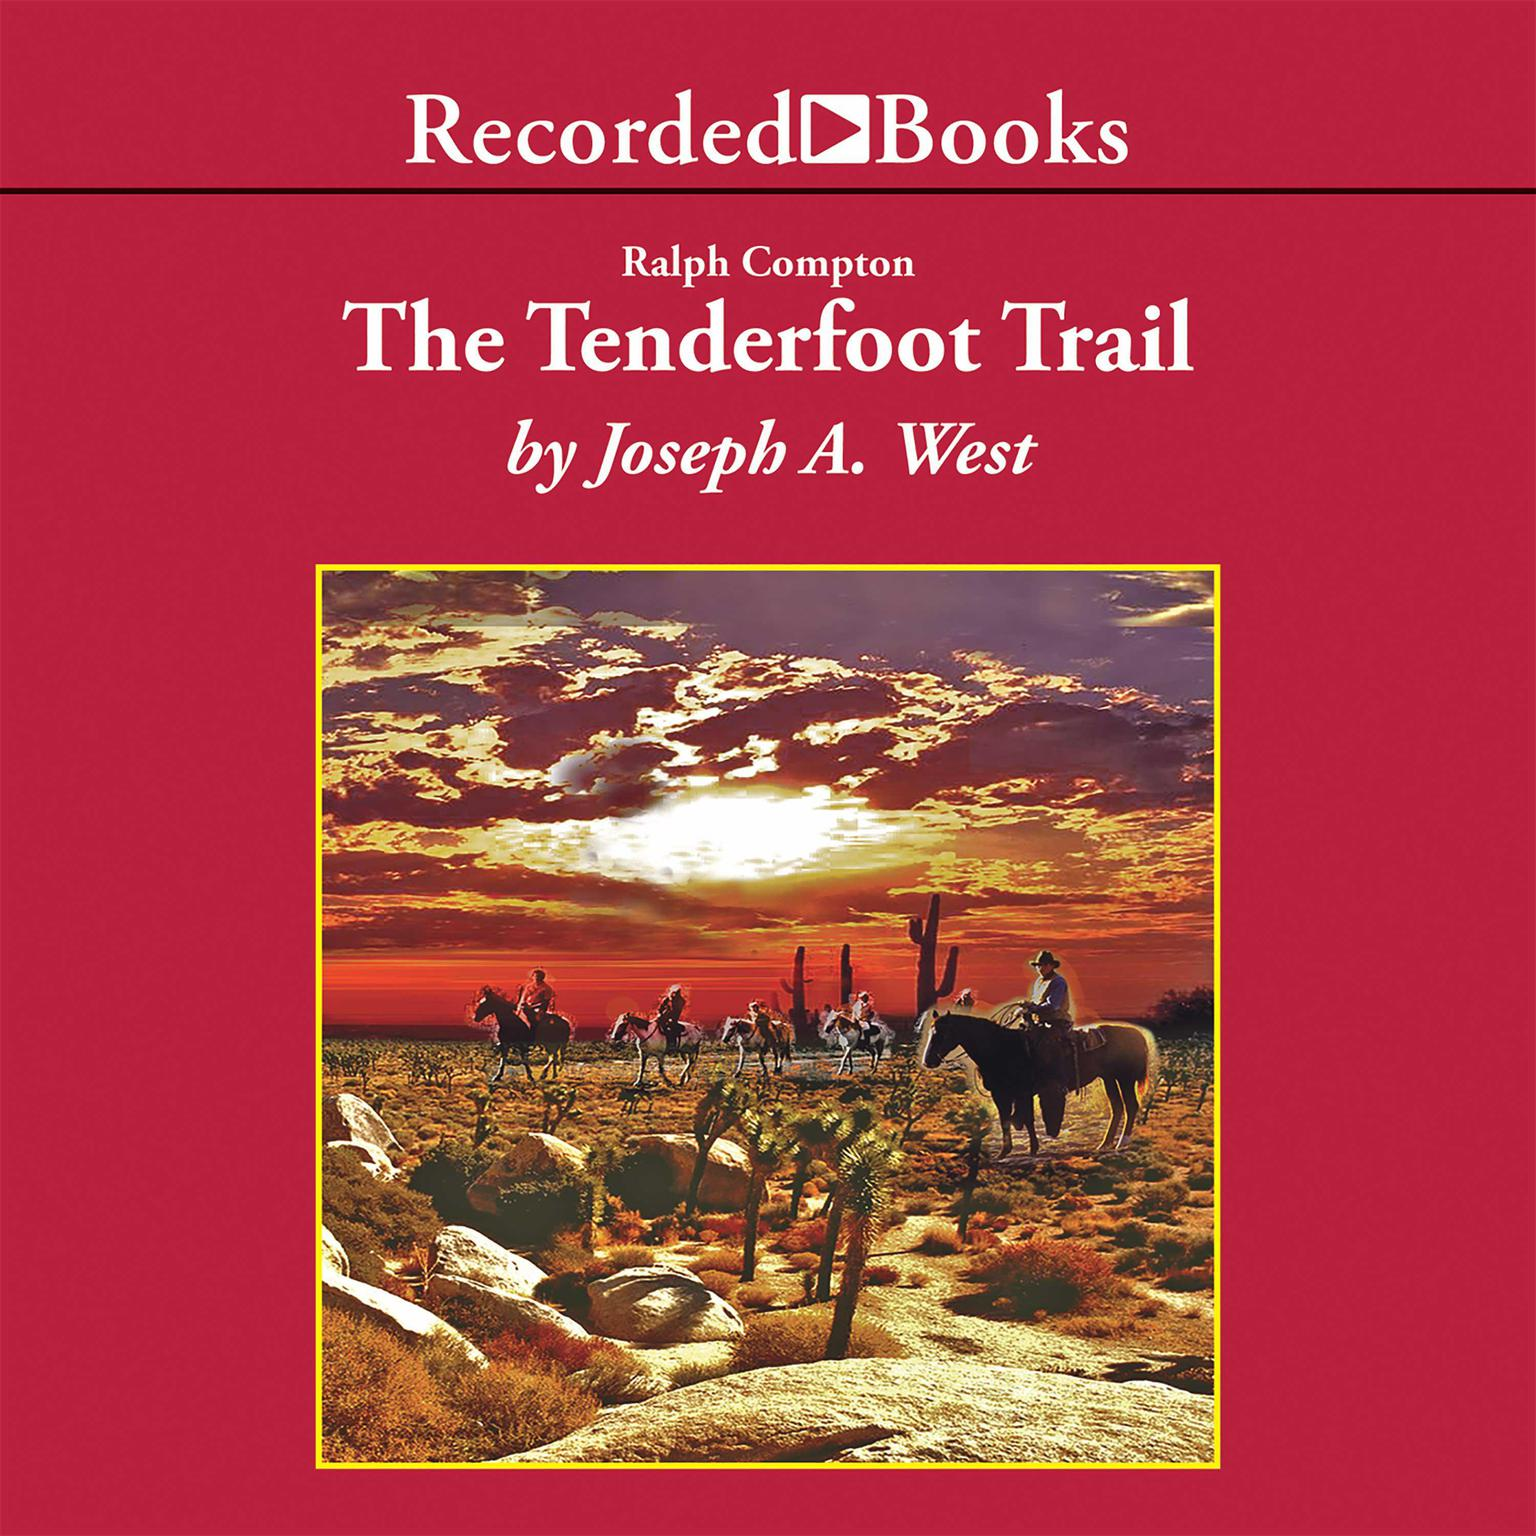 Printable Ralph Compton The Tenderfoot Trail Audiobook Cover Art